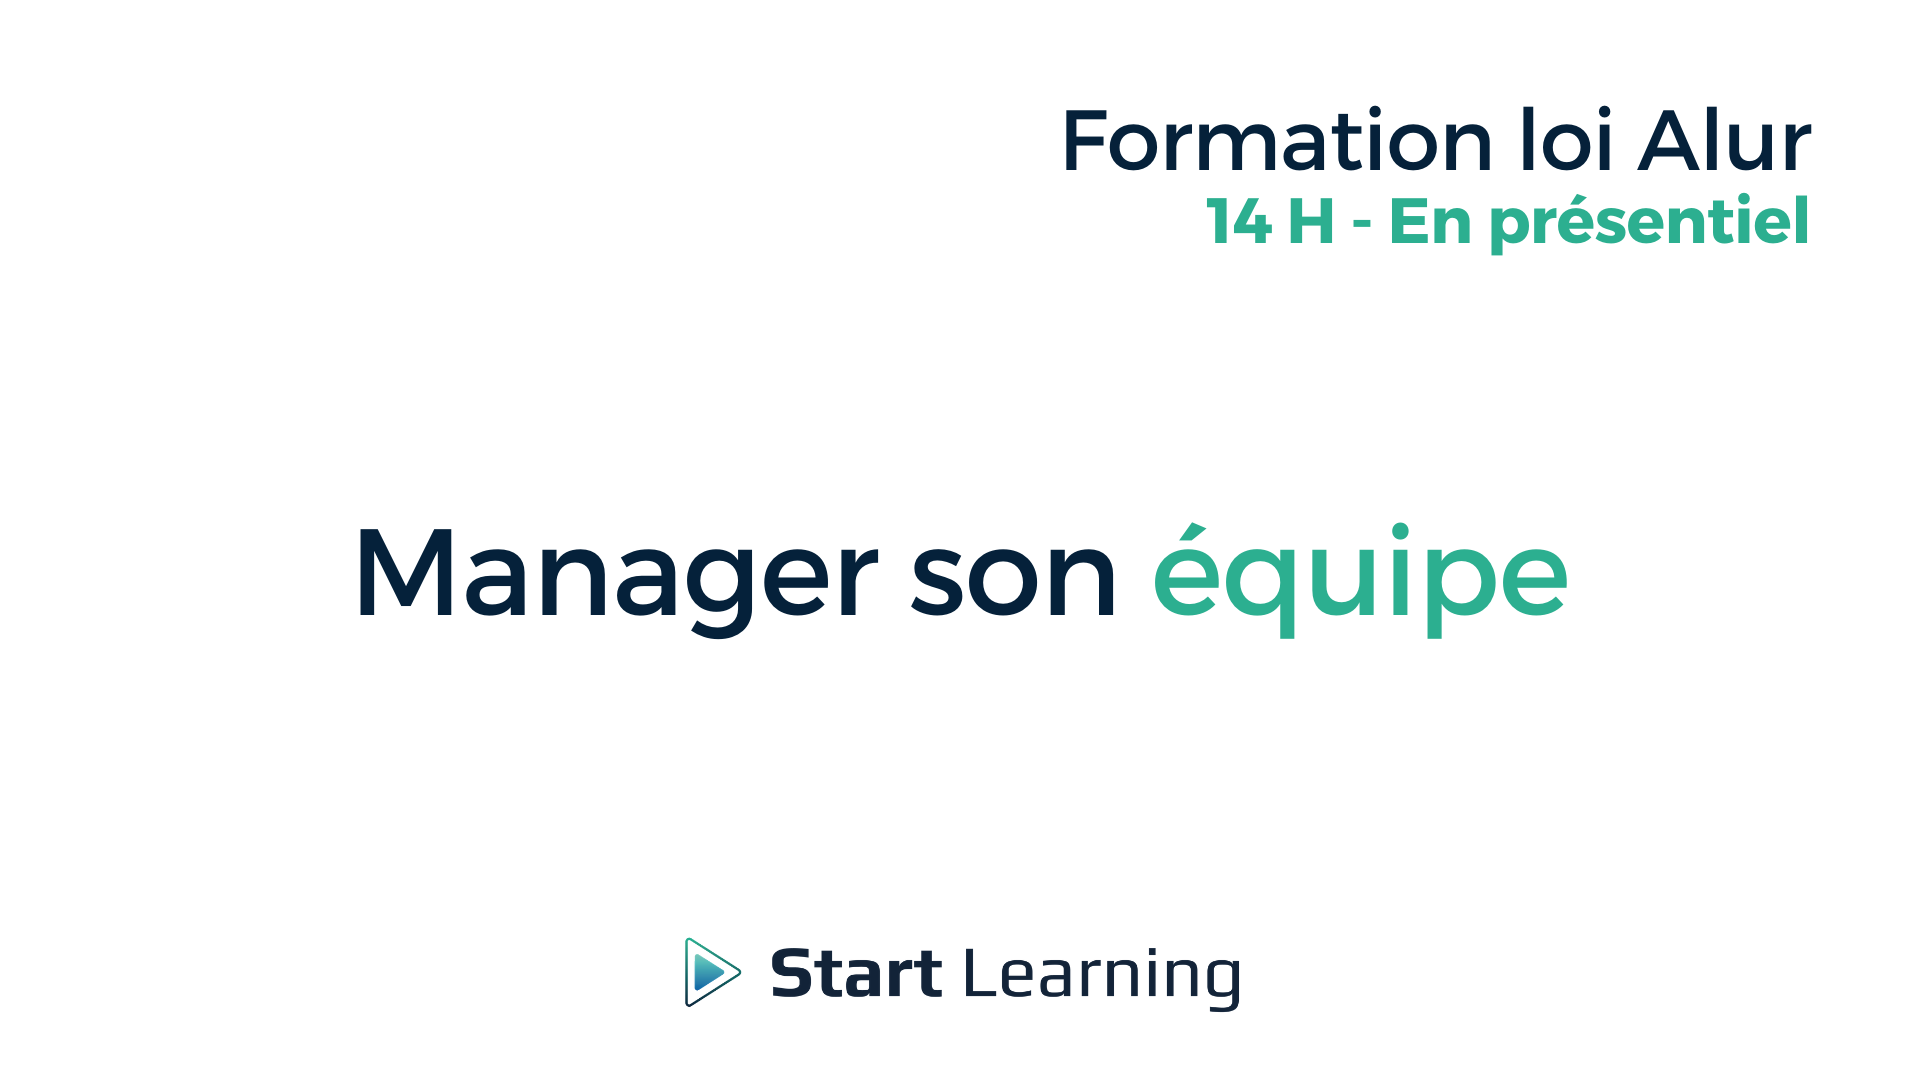 Formation loi Alur - Manager son équipe